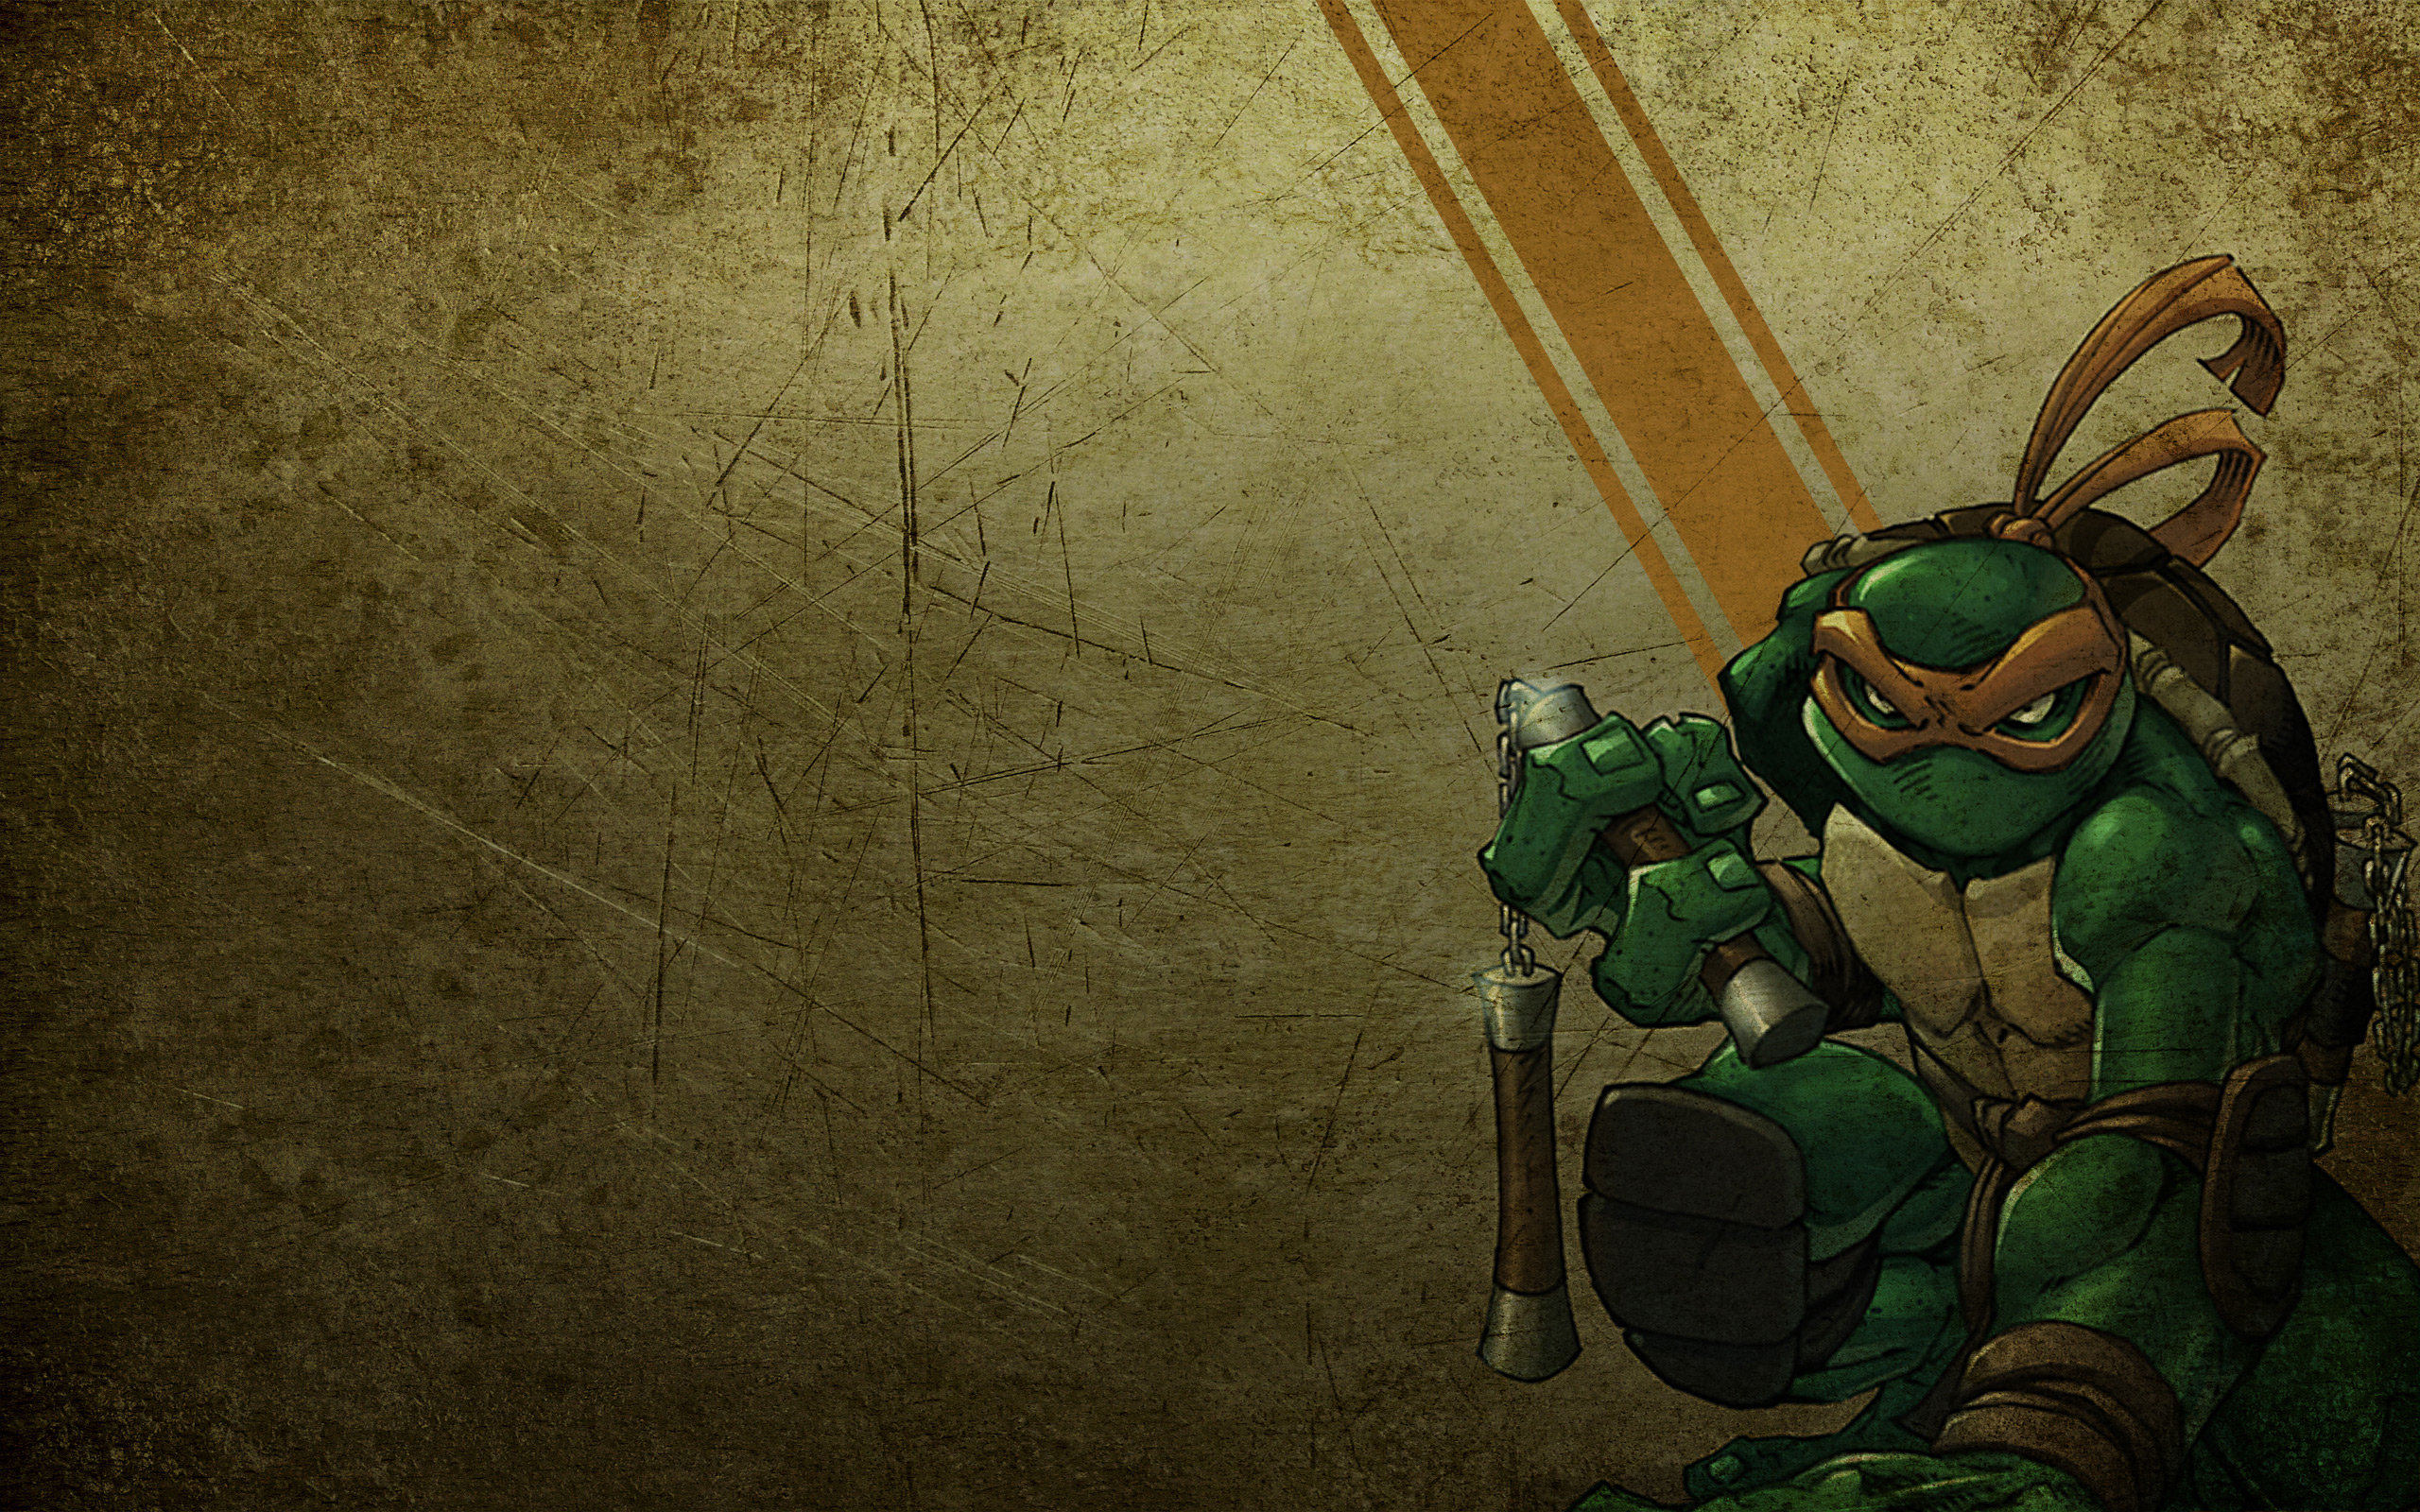 Download hd 2560x1600 Michelangelo (TMNT) computer background ID:111230 for free